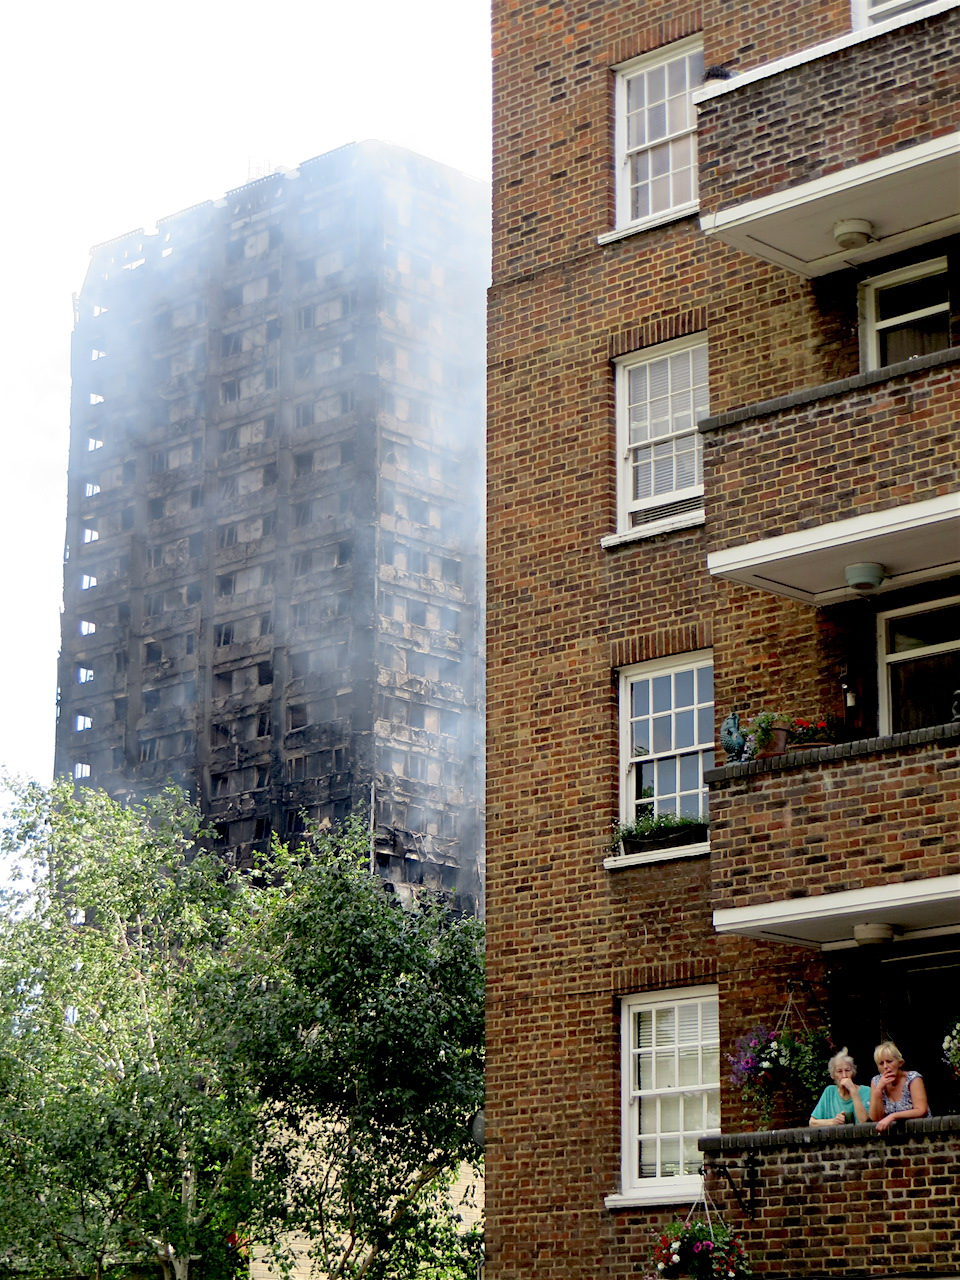 Grenfell Tower in the afternoon of June 14, 2017, and tenants in a neighbouring block (Photo: Andy Worthington).